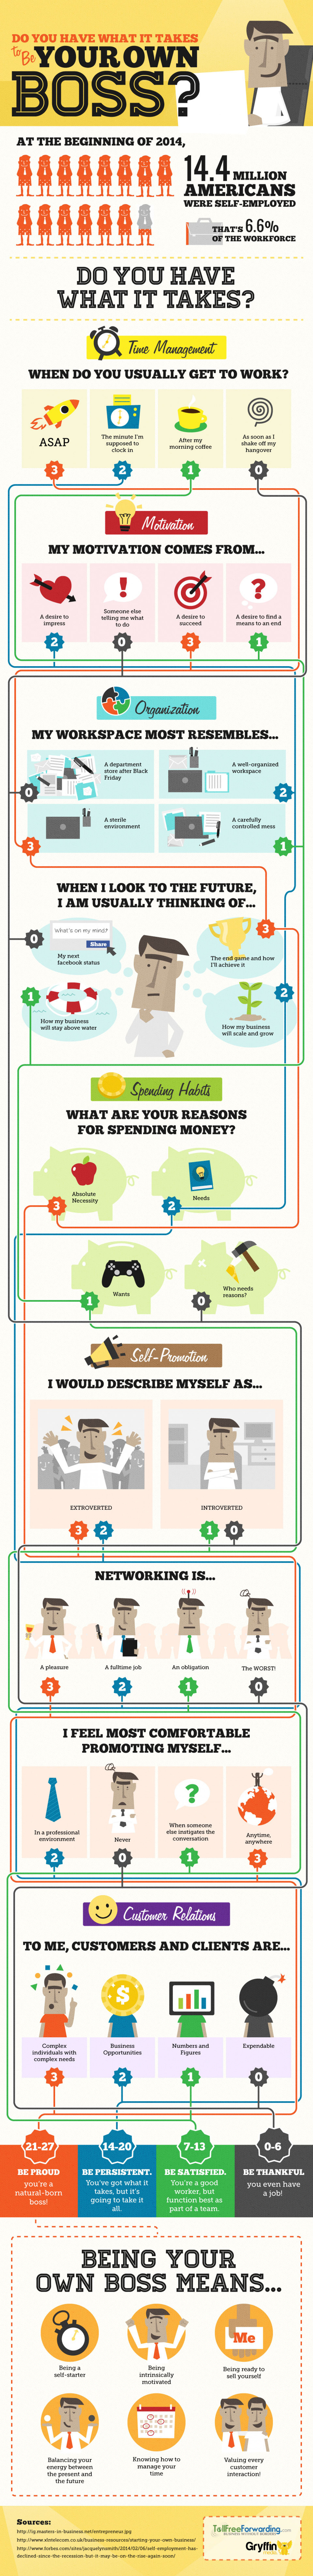 Do You Have What it Takes to Be Your Own Boss? Infographic